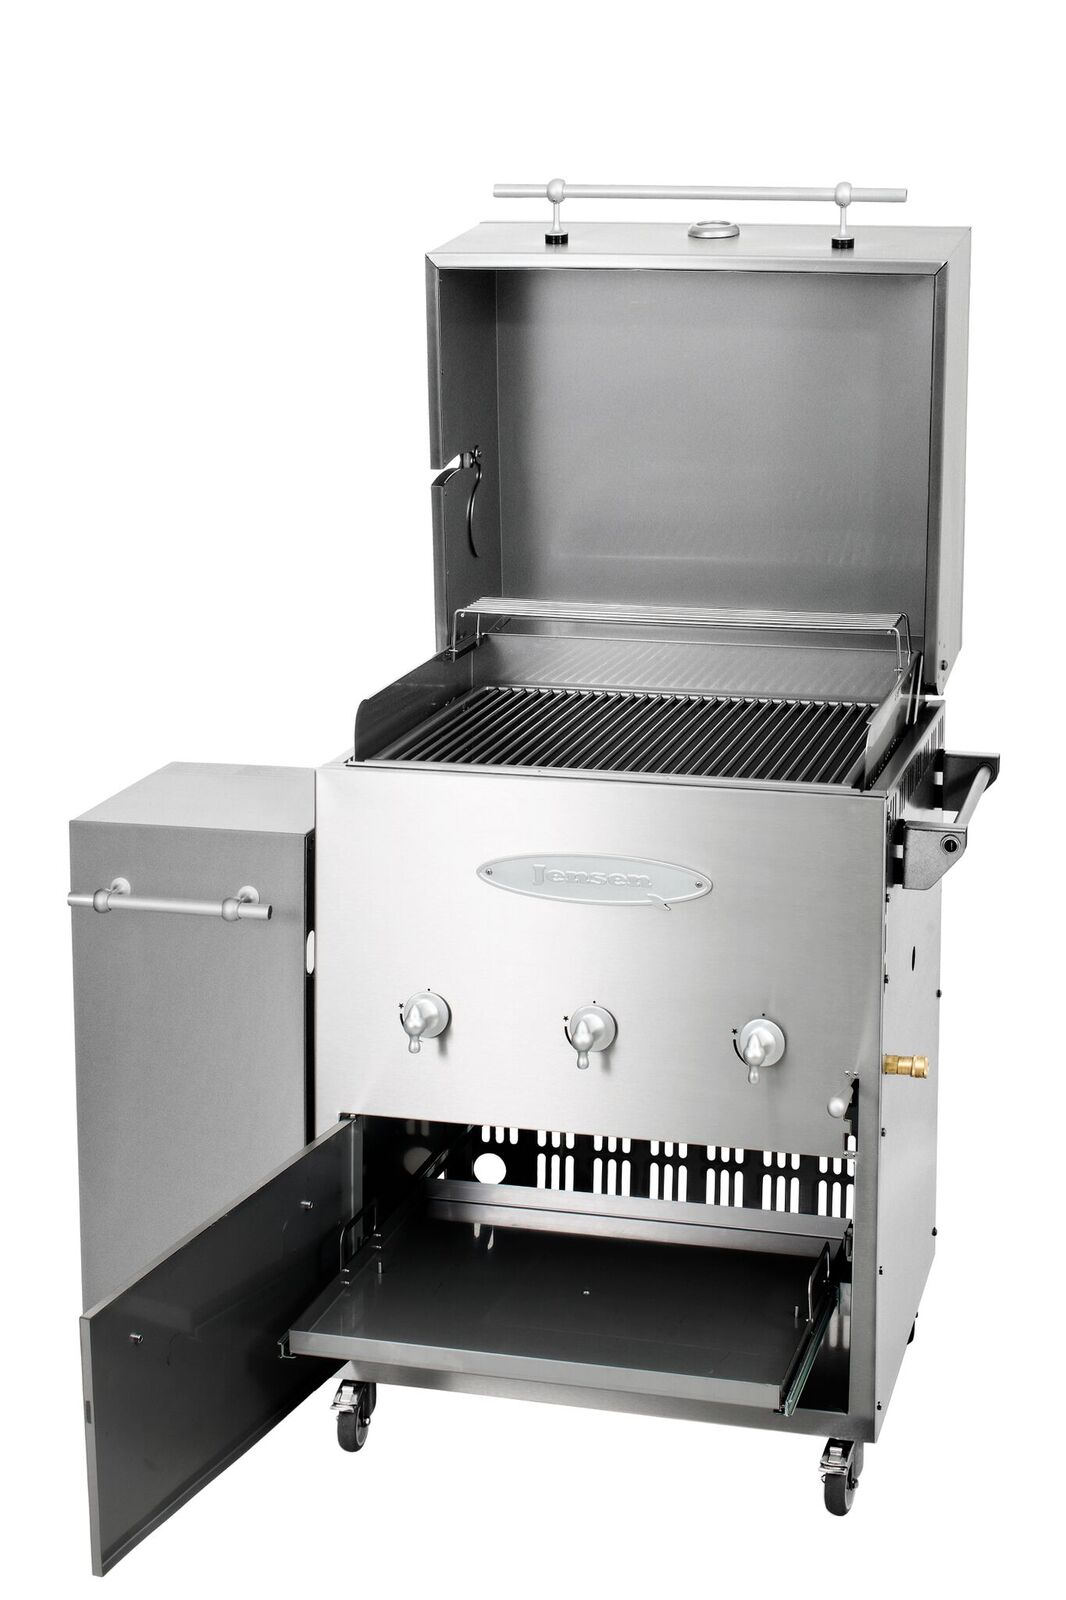 Jensen Grill UK distribution